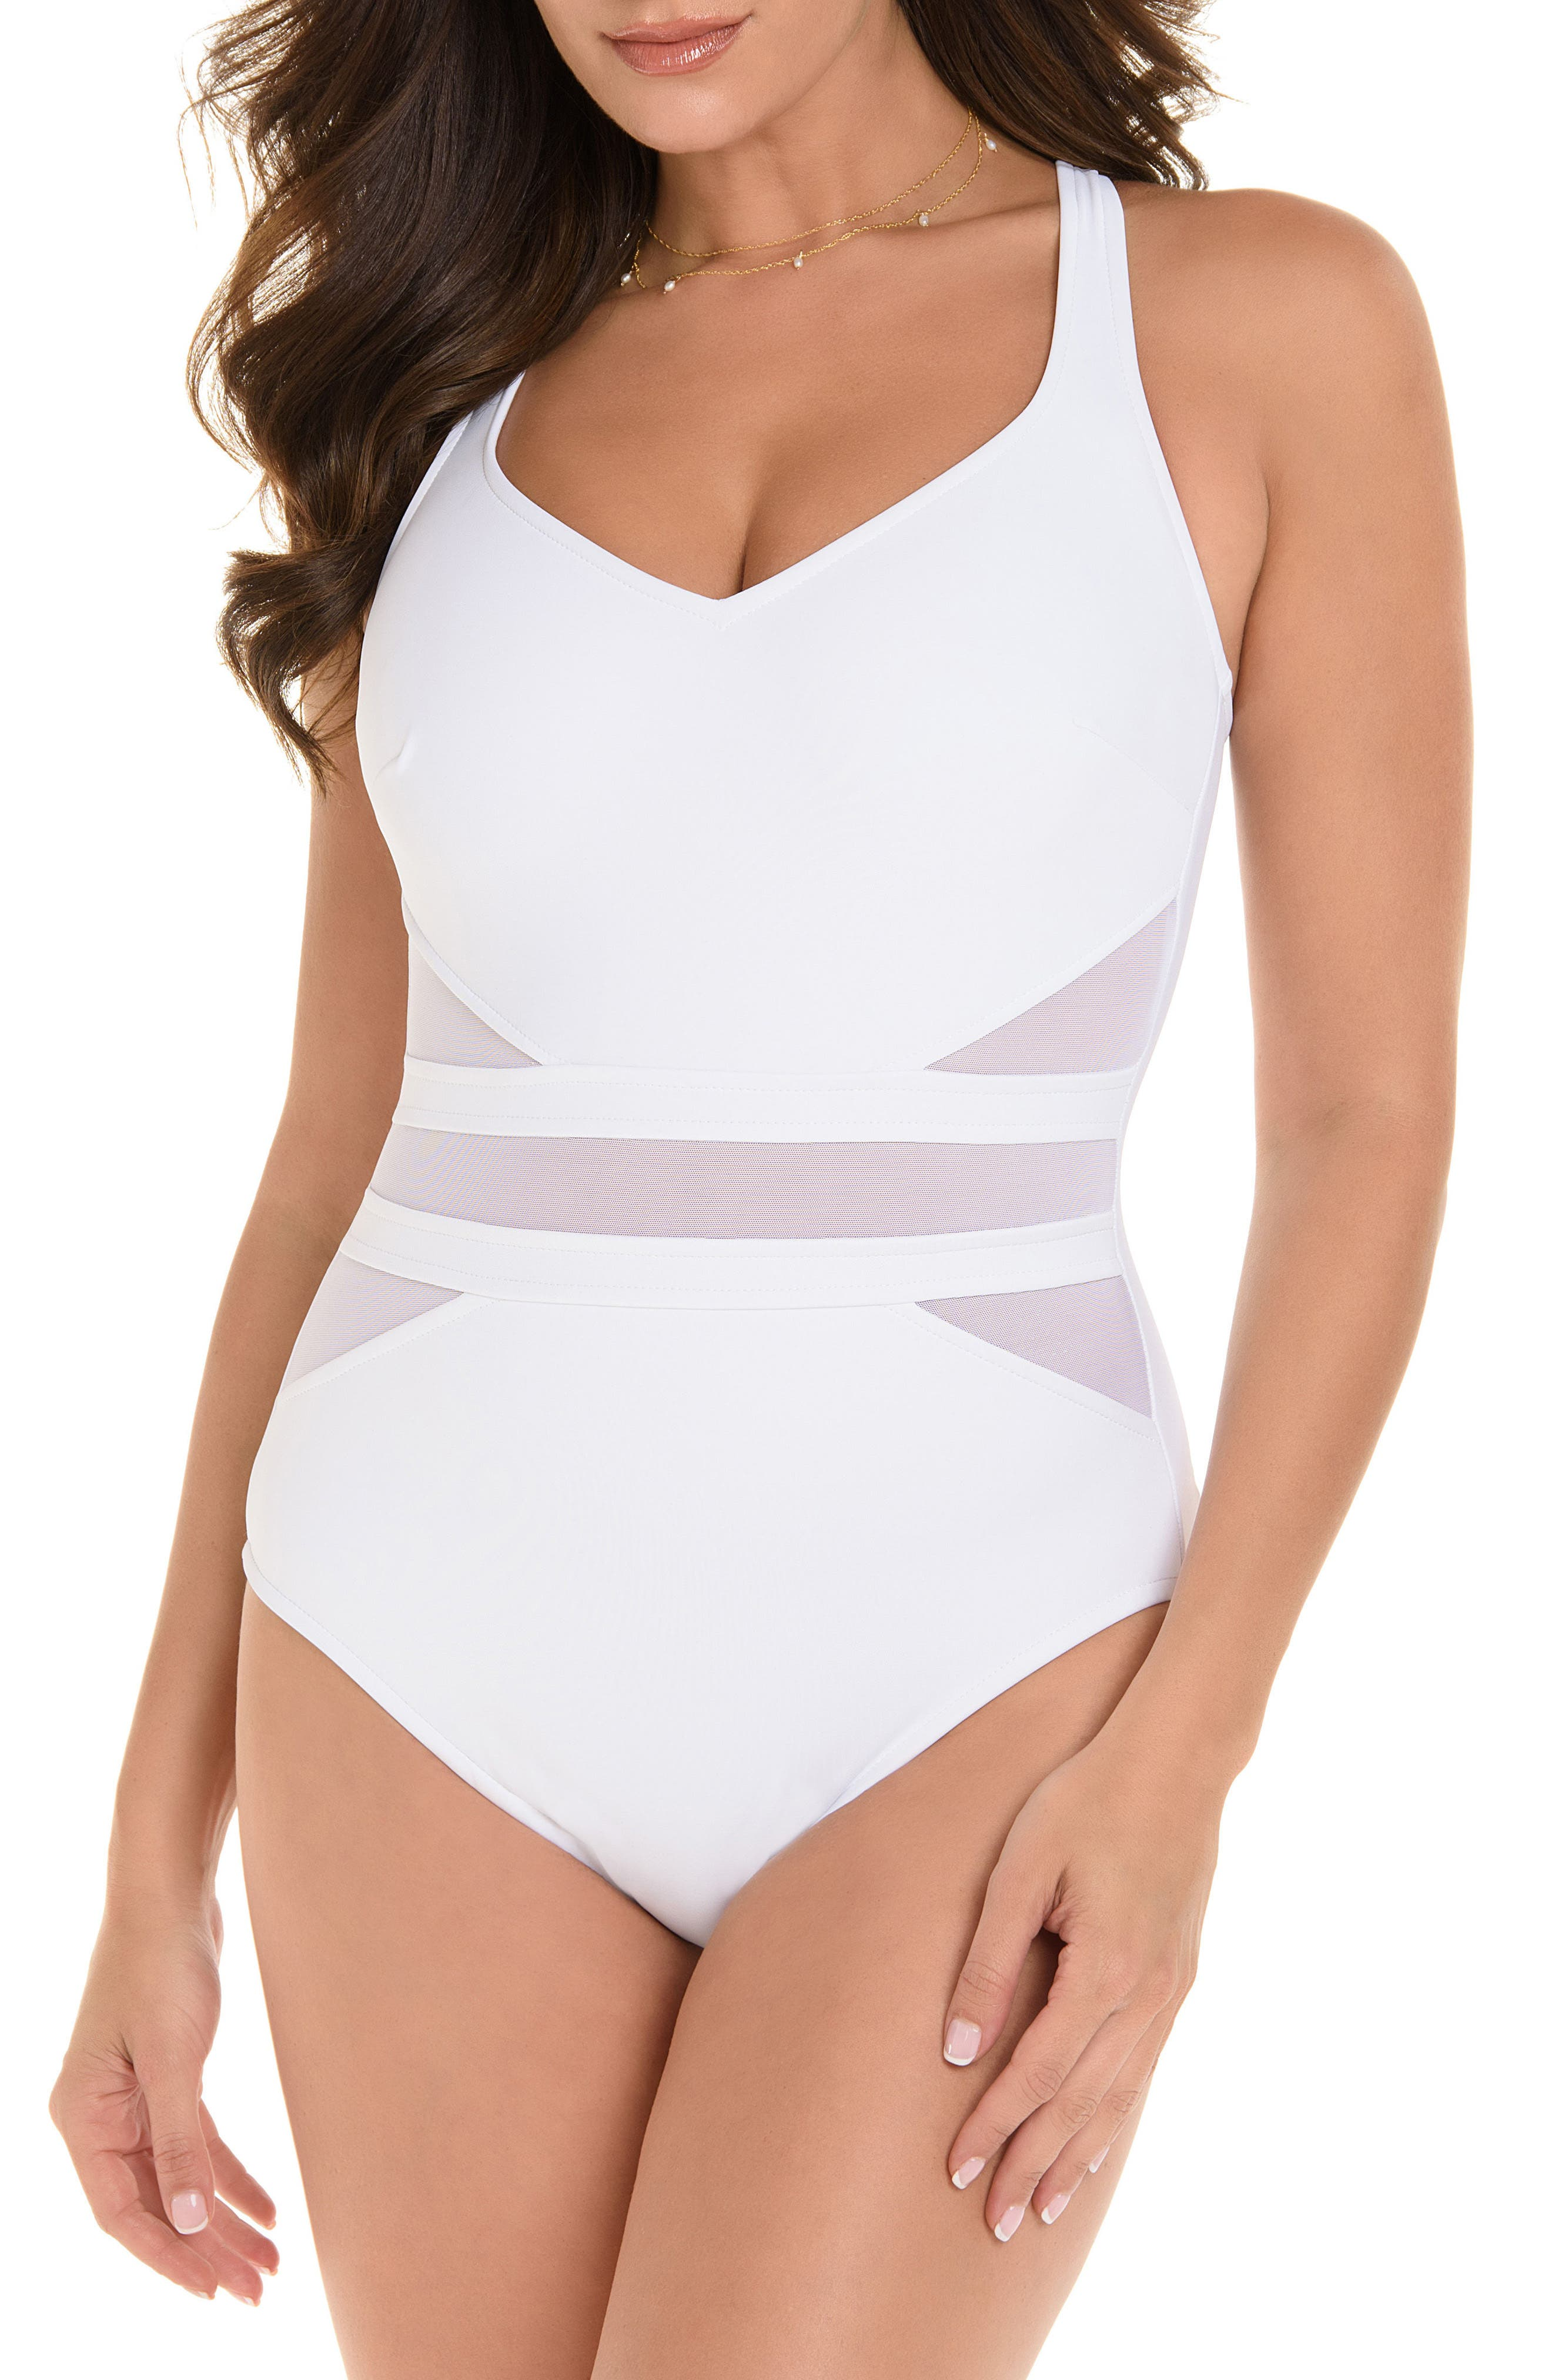 Illusionist It's a Cinch One-Piece Swimsuit,                             Main thumbnail 1, color,                             100